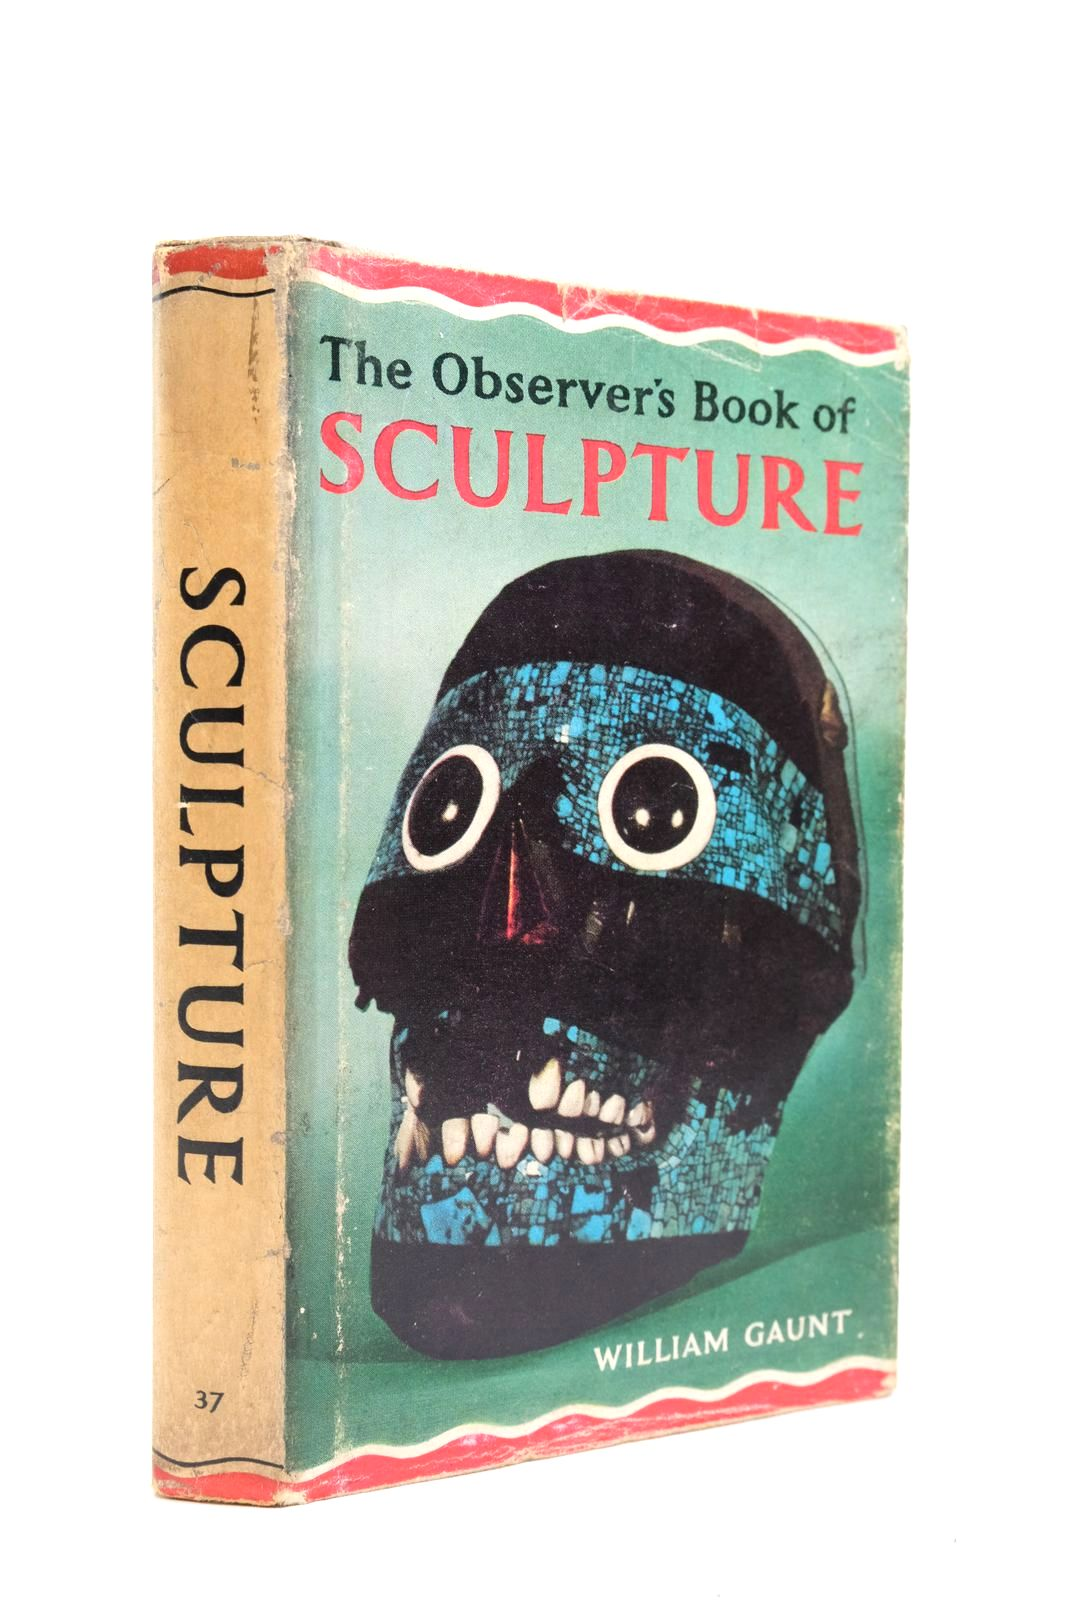 Photo of THE OBSERVER'S BOOK OF SCULPTURE- Stock Number: 2134658